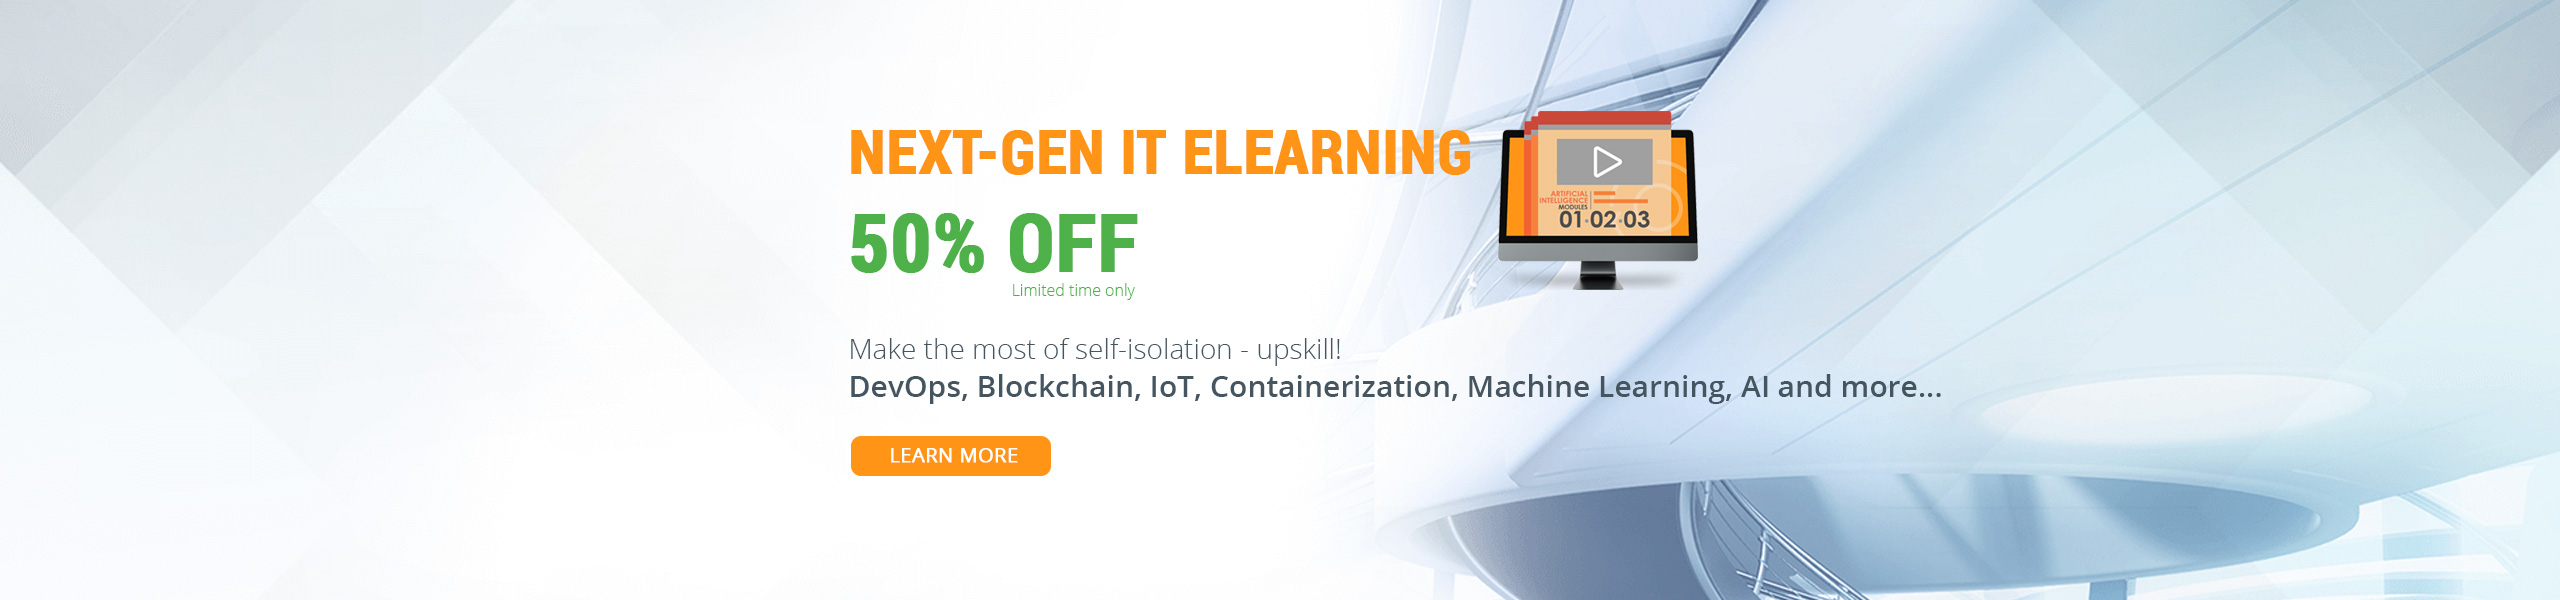 NextGen IT eLearning Kits